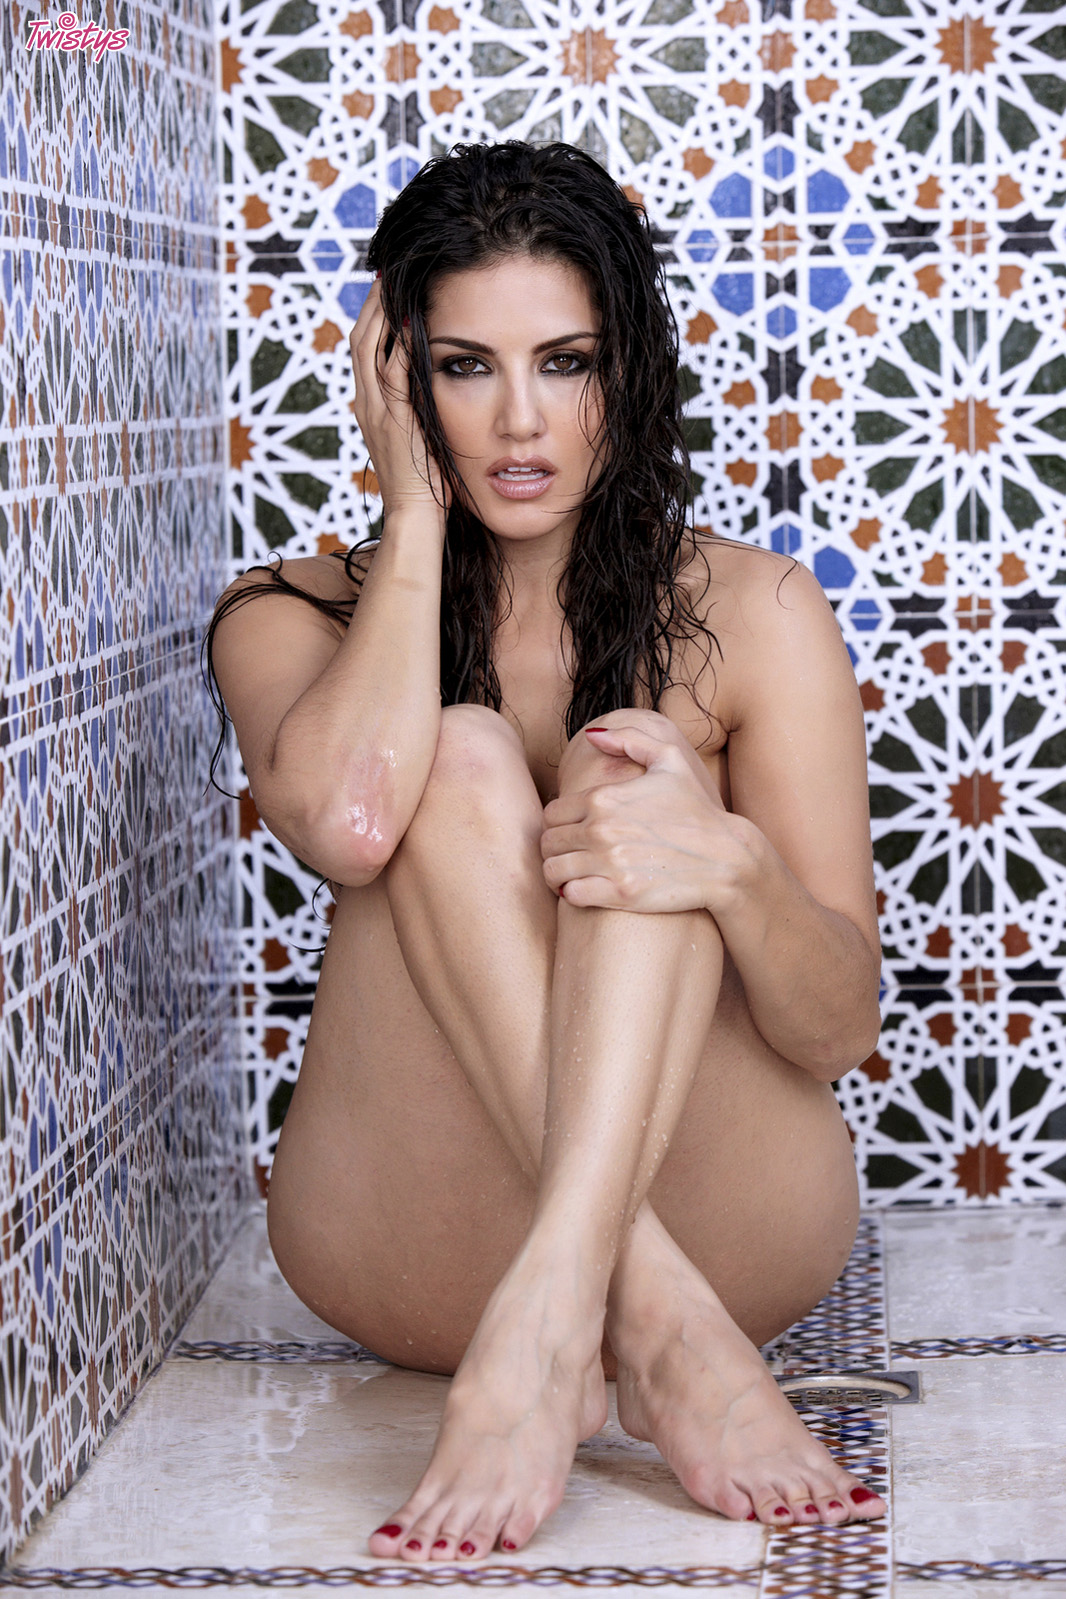 Toes sunny leone